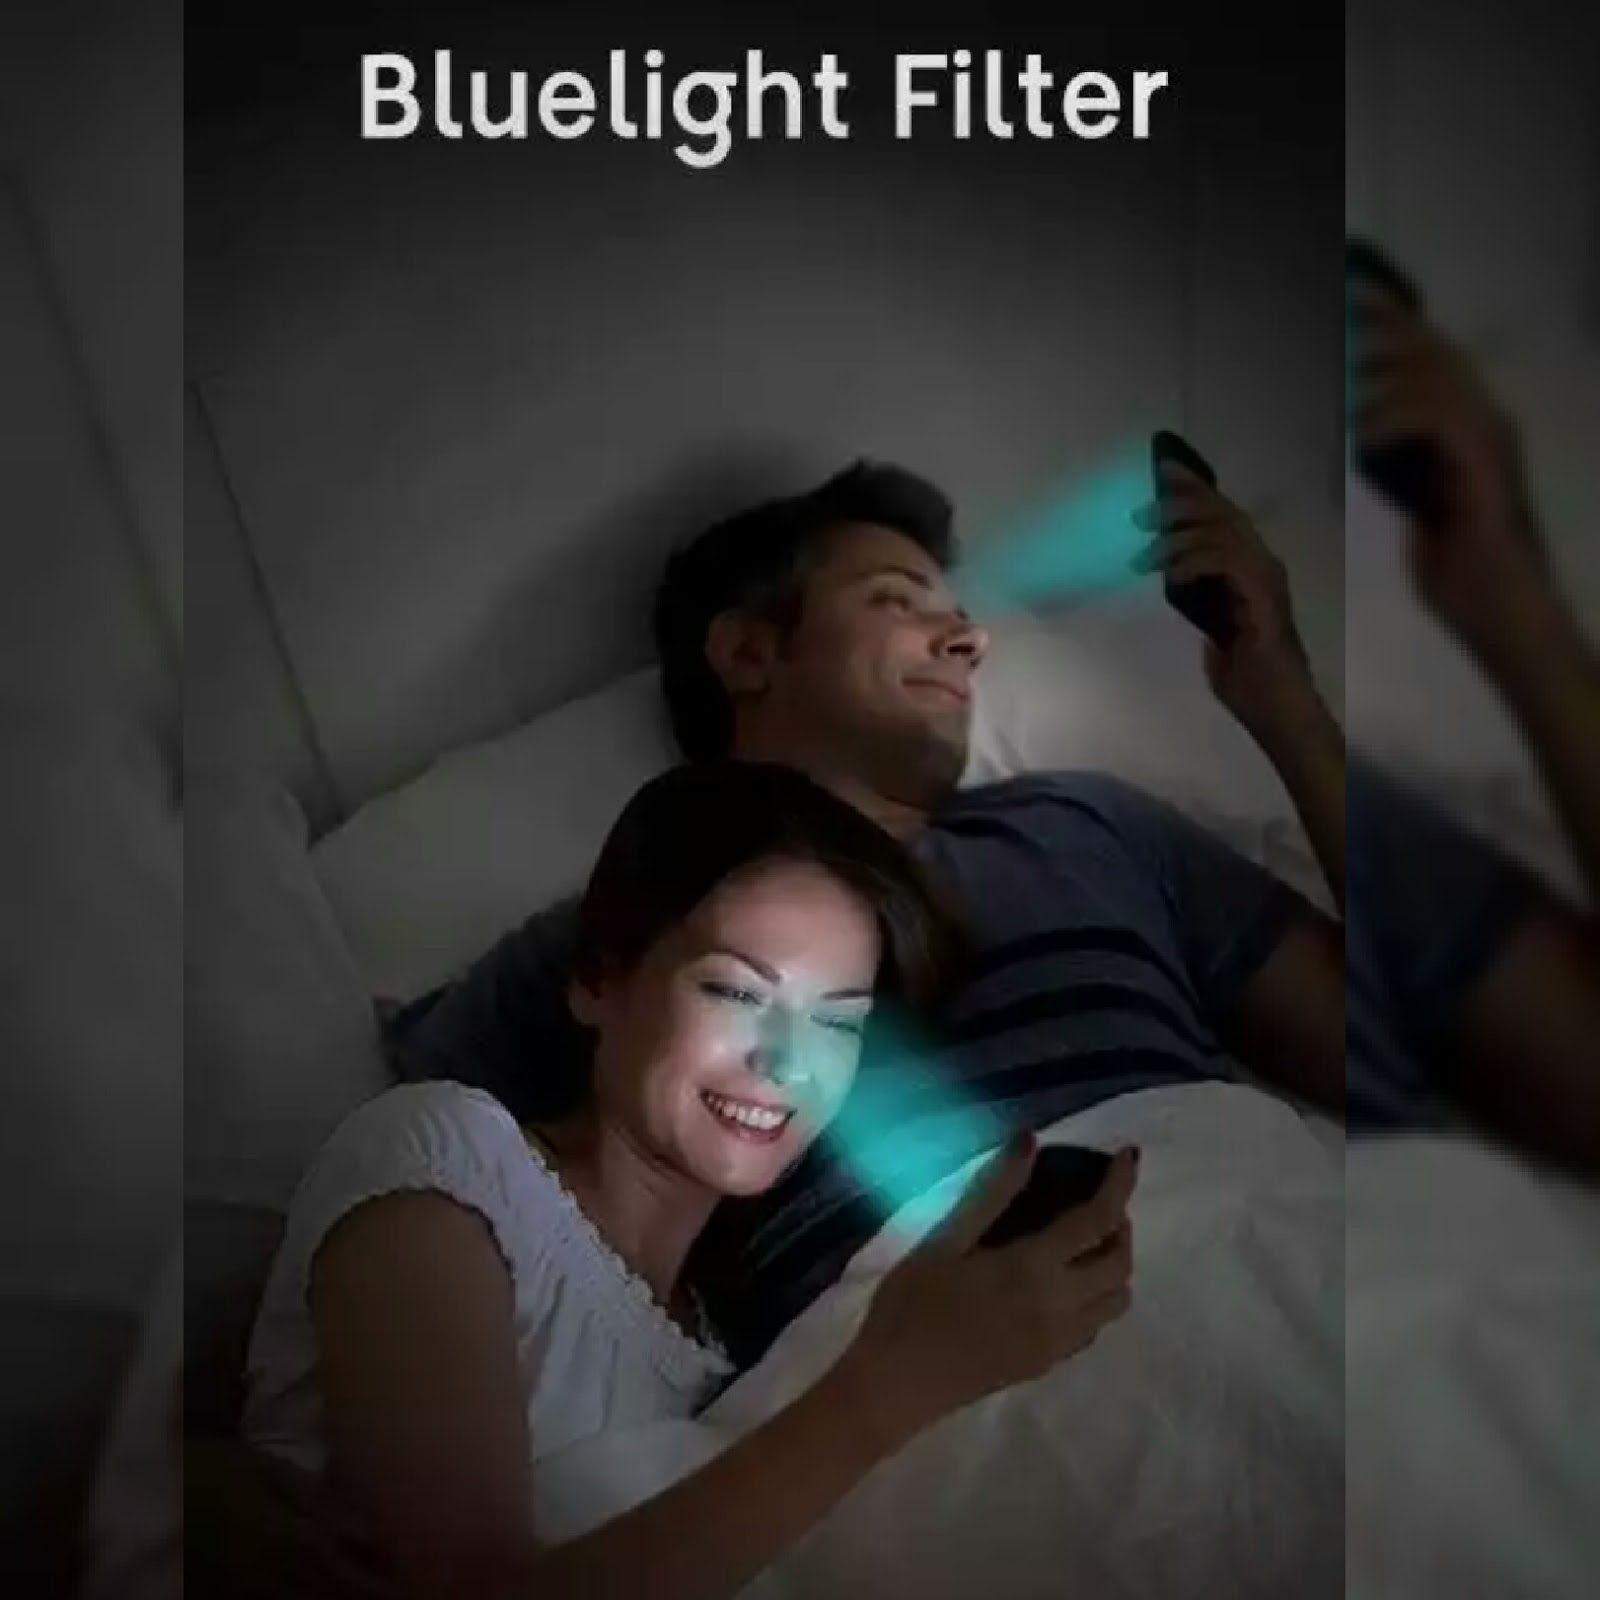 protect-your-eyes-from-harmful-blue-light-from-your-screen-with-bluelight-fliter